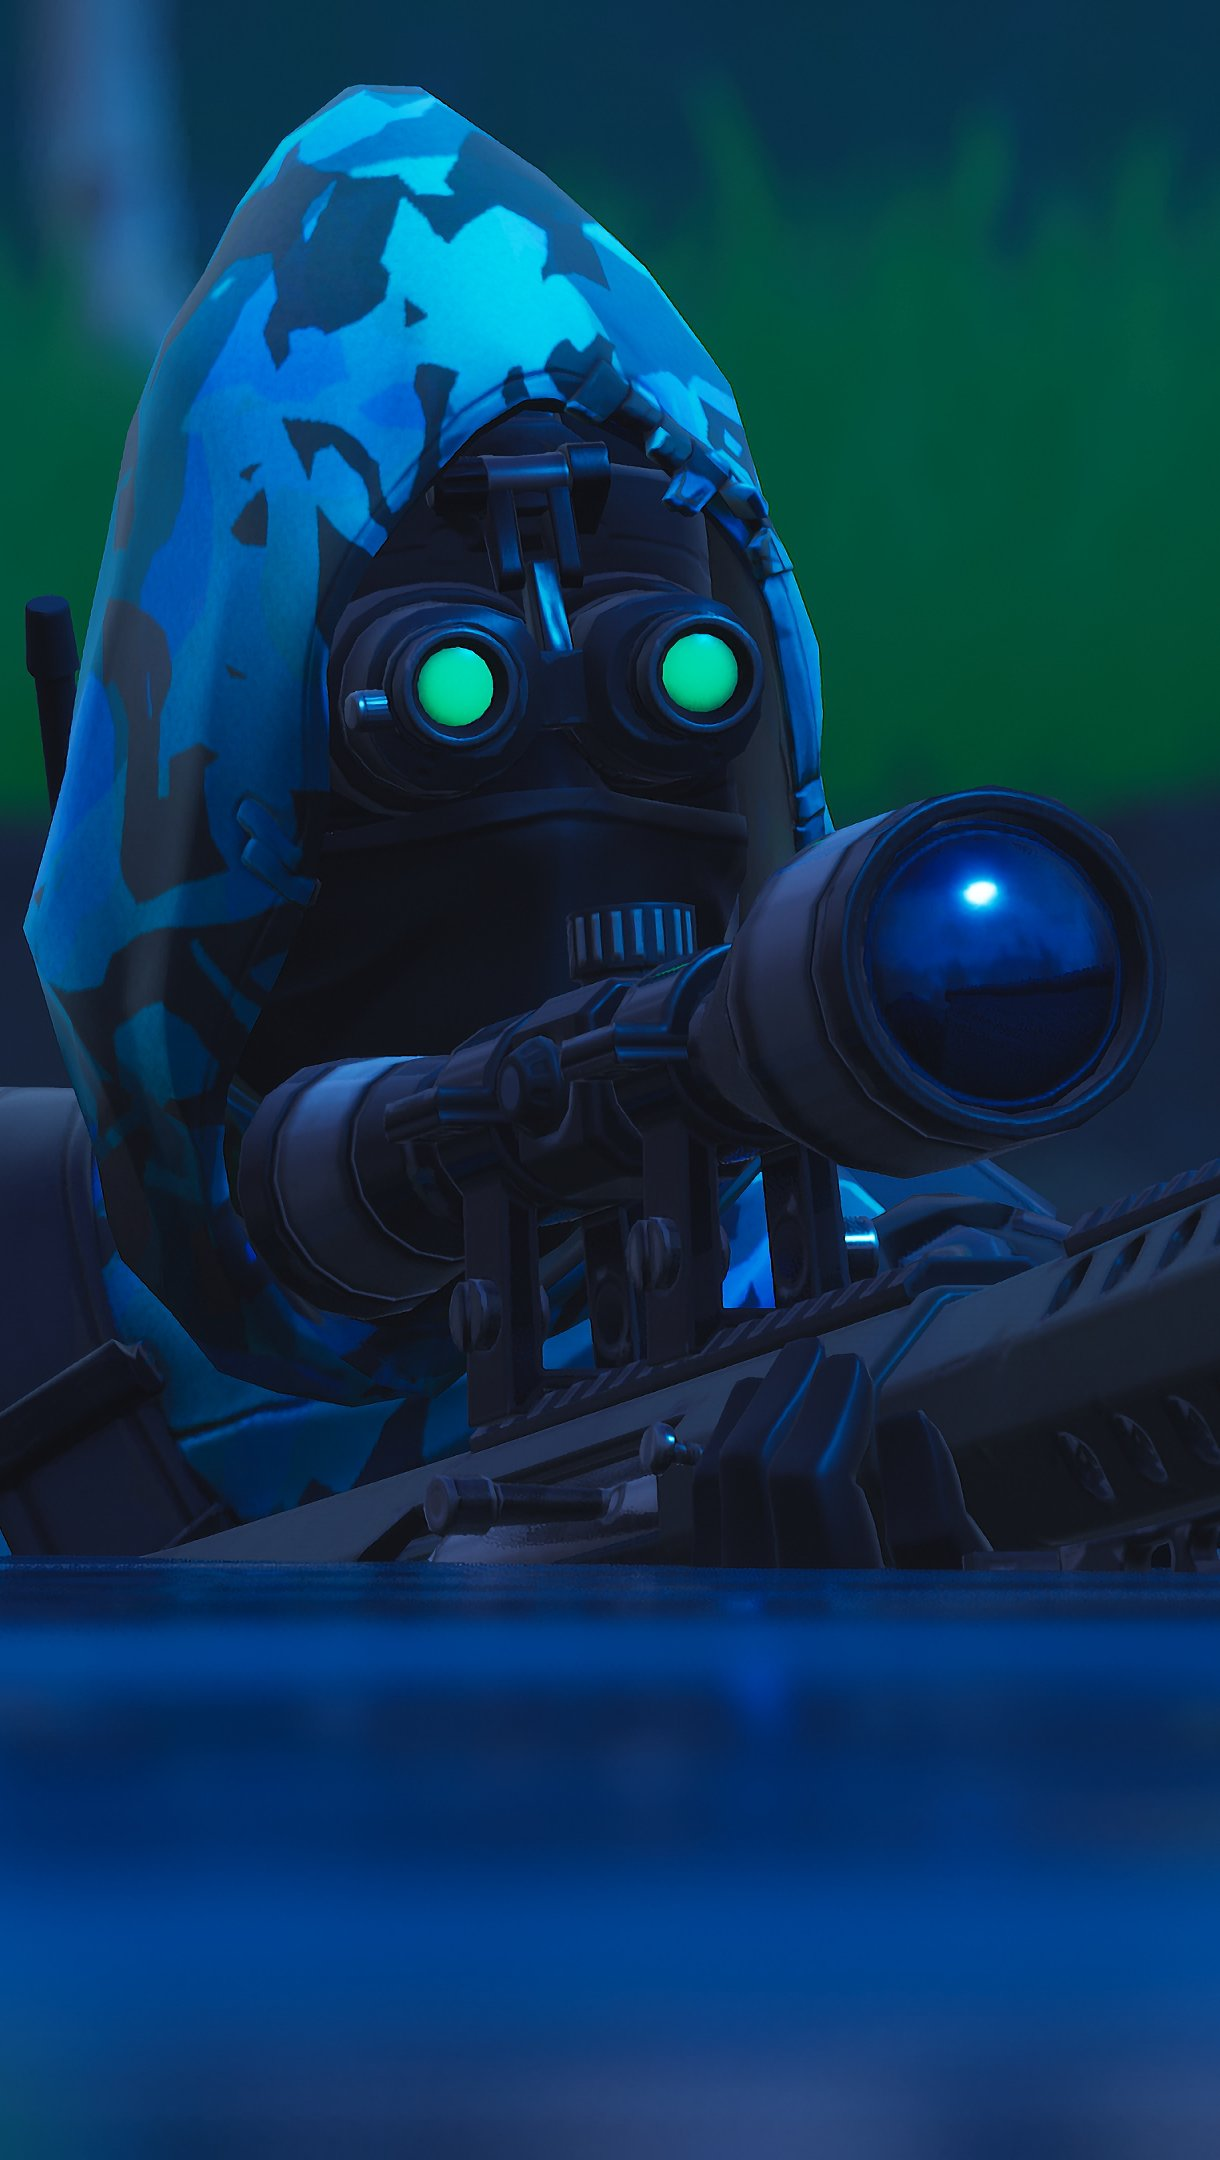 Wallpaper Fortnite Insight with Sniper Rifle Vertical